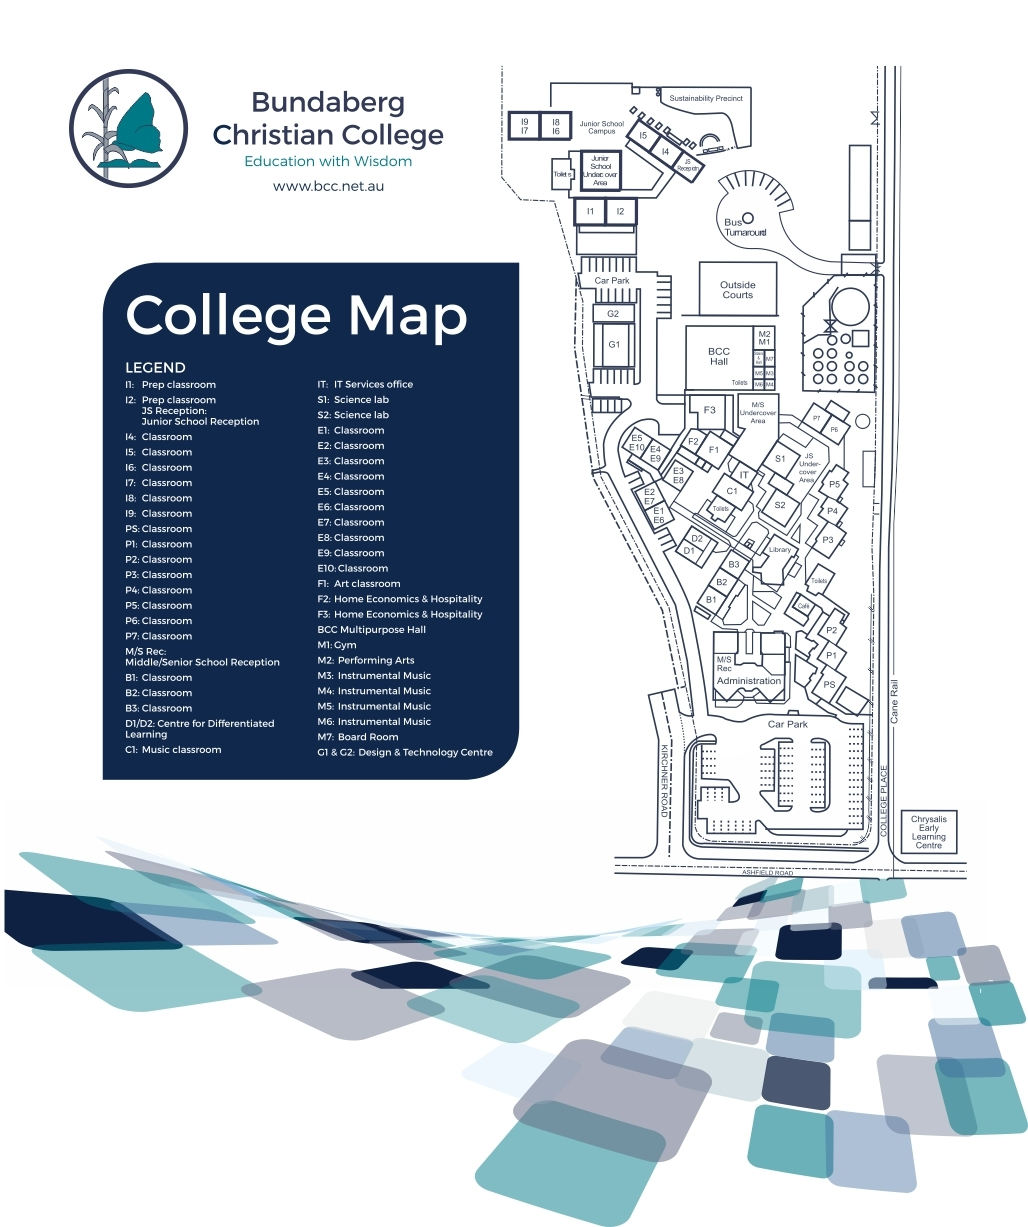 School Map Bundaberg Christian College